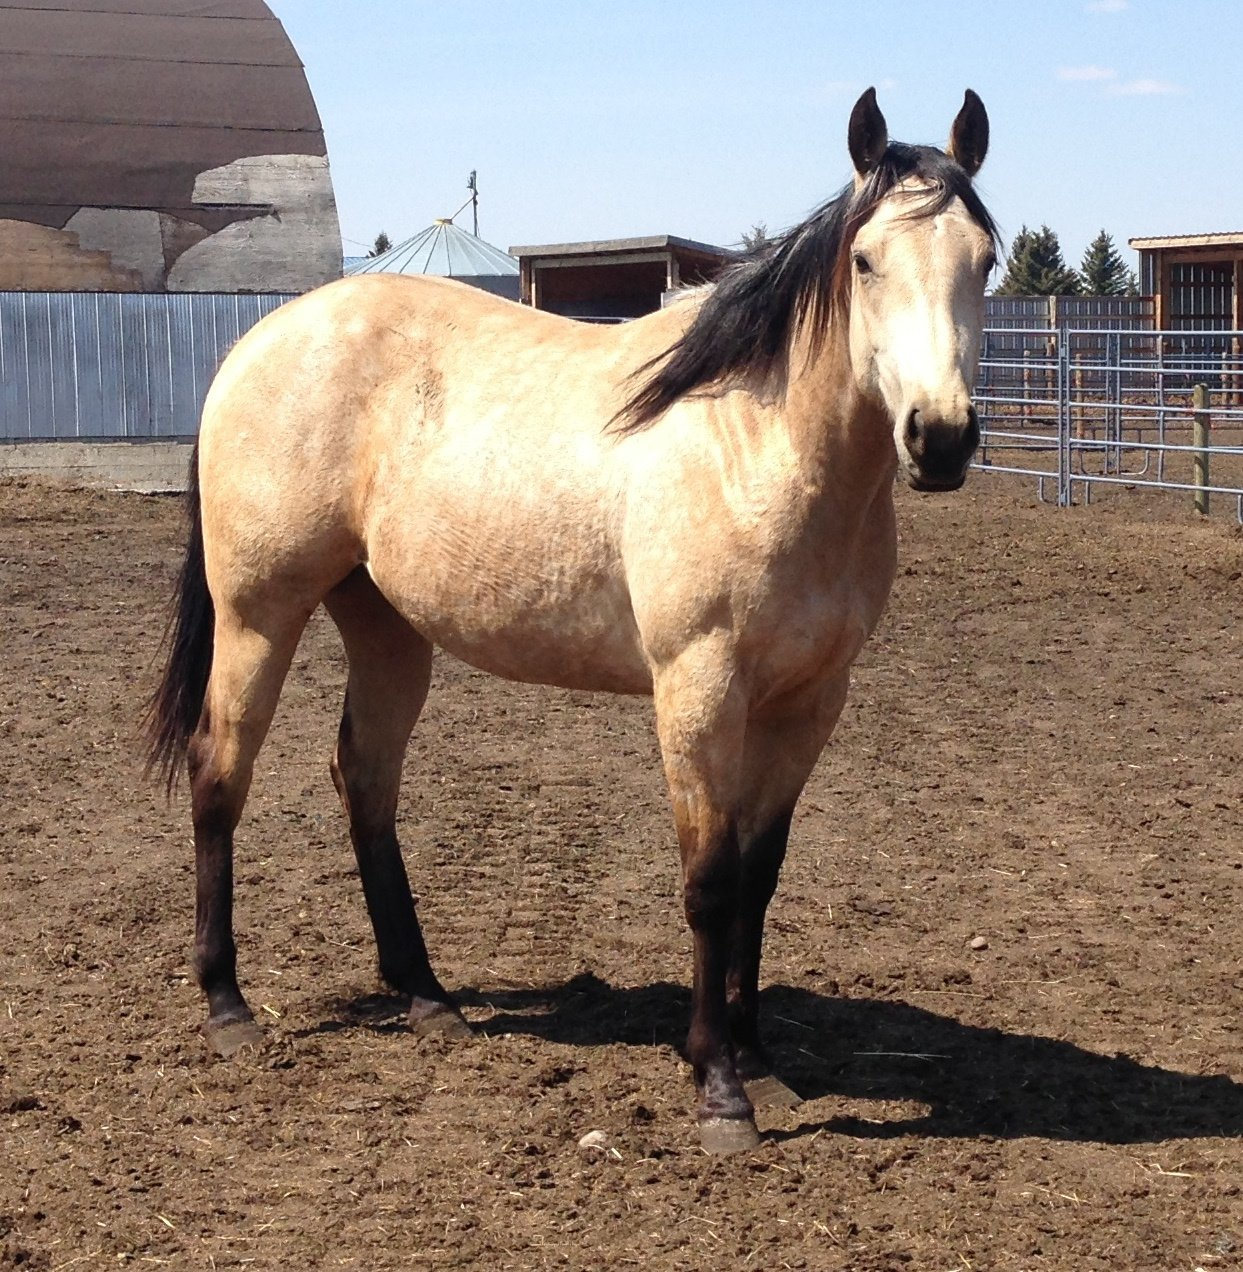 ALLIE - 2014 mare, she has a bowed tendon and will be staying here.